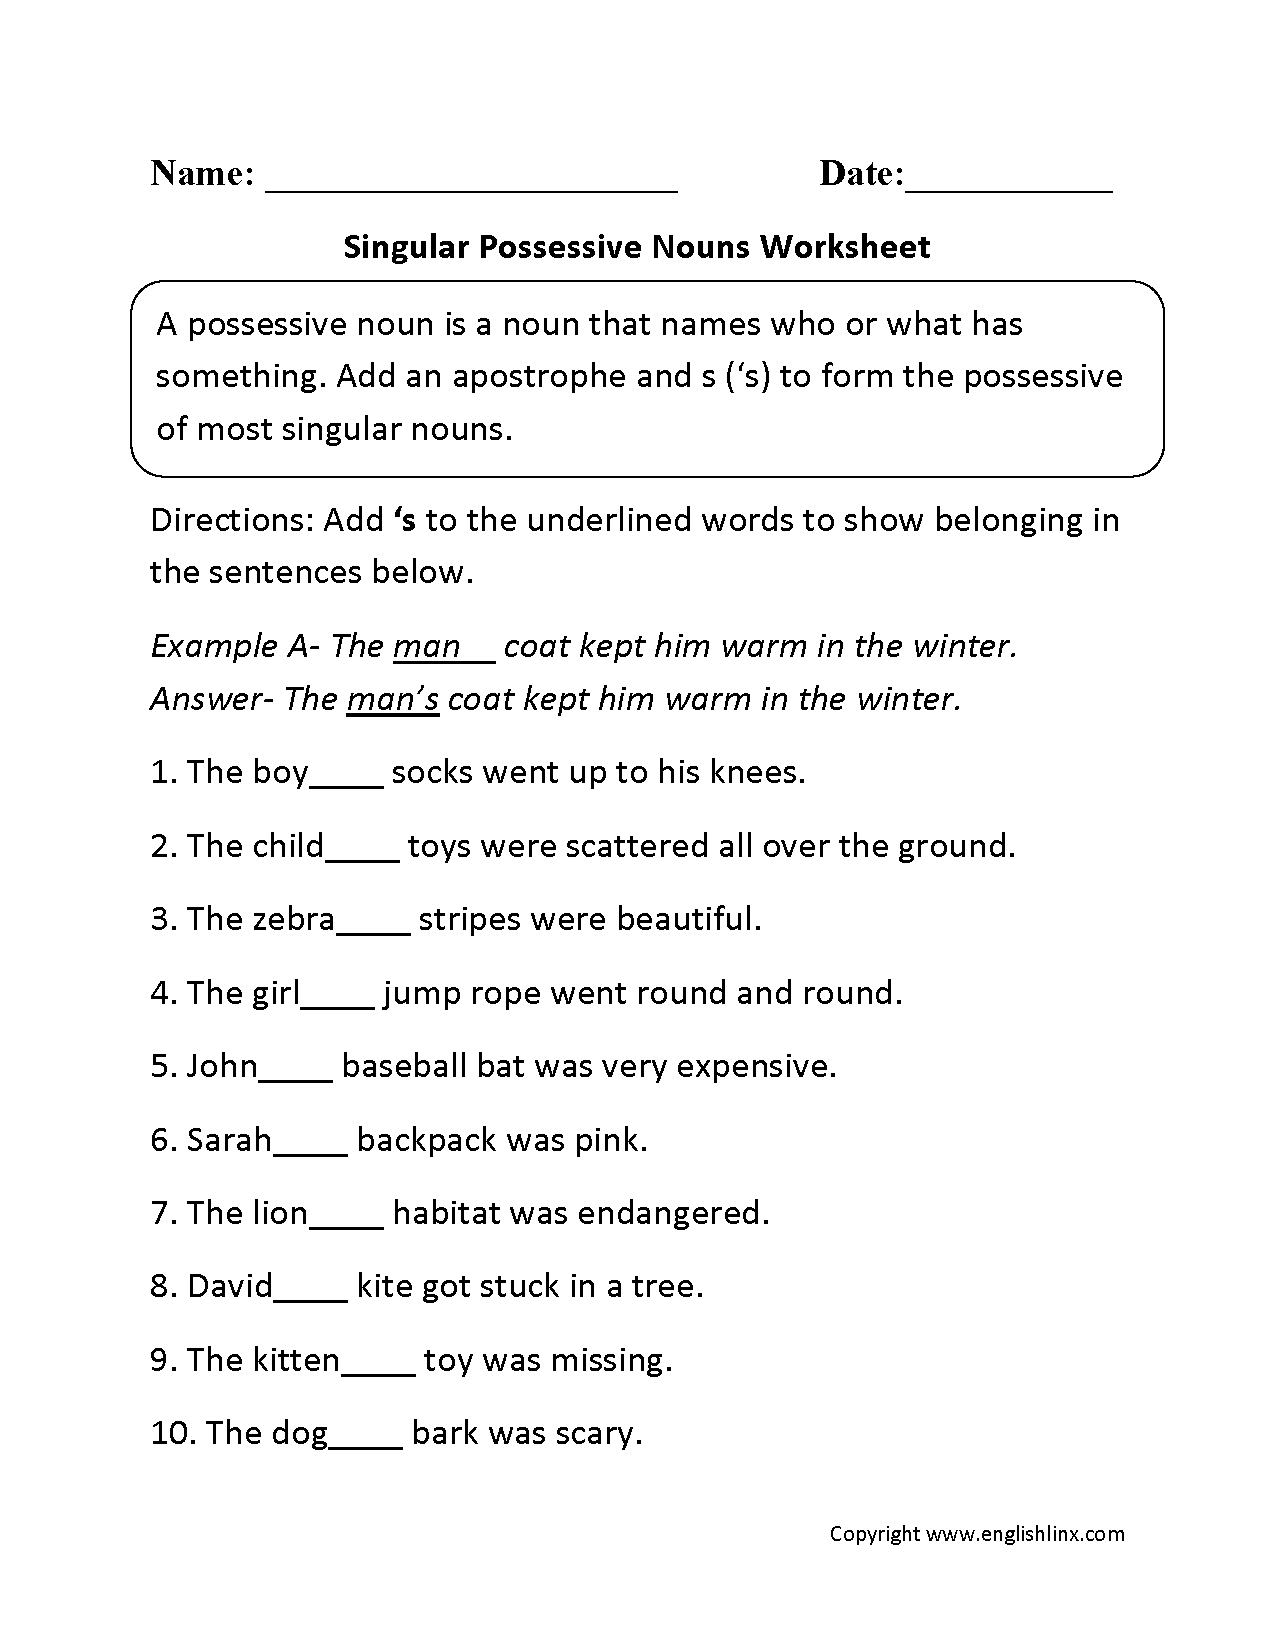 Aldiablosus  Stunning Nouns Worksheets  Possessive Nouns Worksheets With Extraordinary Possessive Nouns Worksheets With Delightful Free Worksheets For First Grade Also Reading Worksheets For Th Grade In Addition Distance And Displacement Worksheet Answers And Add Subtract Multiply Divide Fractions Worksheet As Well As Addition Worksheets For St Grade Additionally Printable Phonics Worksheets From Englishlinxcom With Aldiablosus  Extraordinary Nouns Worksheets  Possessive Nouns Worksheets With Delightful Possessive Nouns Worksheets And Stunning Free Worksheets For First Grade Also Reading Worksheets For Th Grade In Addition Distance And Displacement Worksheet Answers From Englishlinxcom